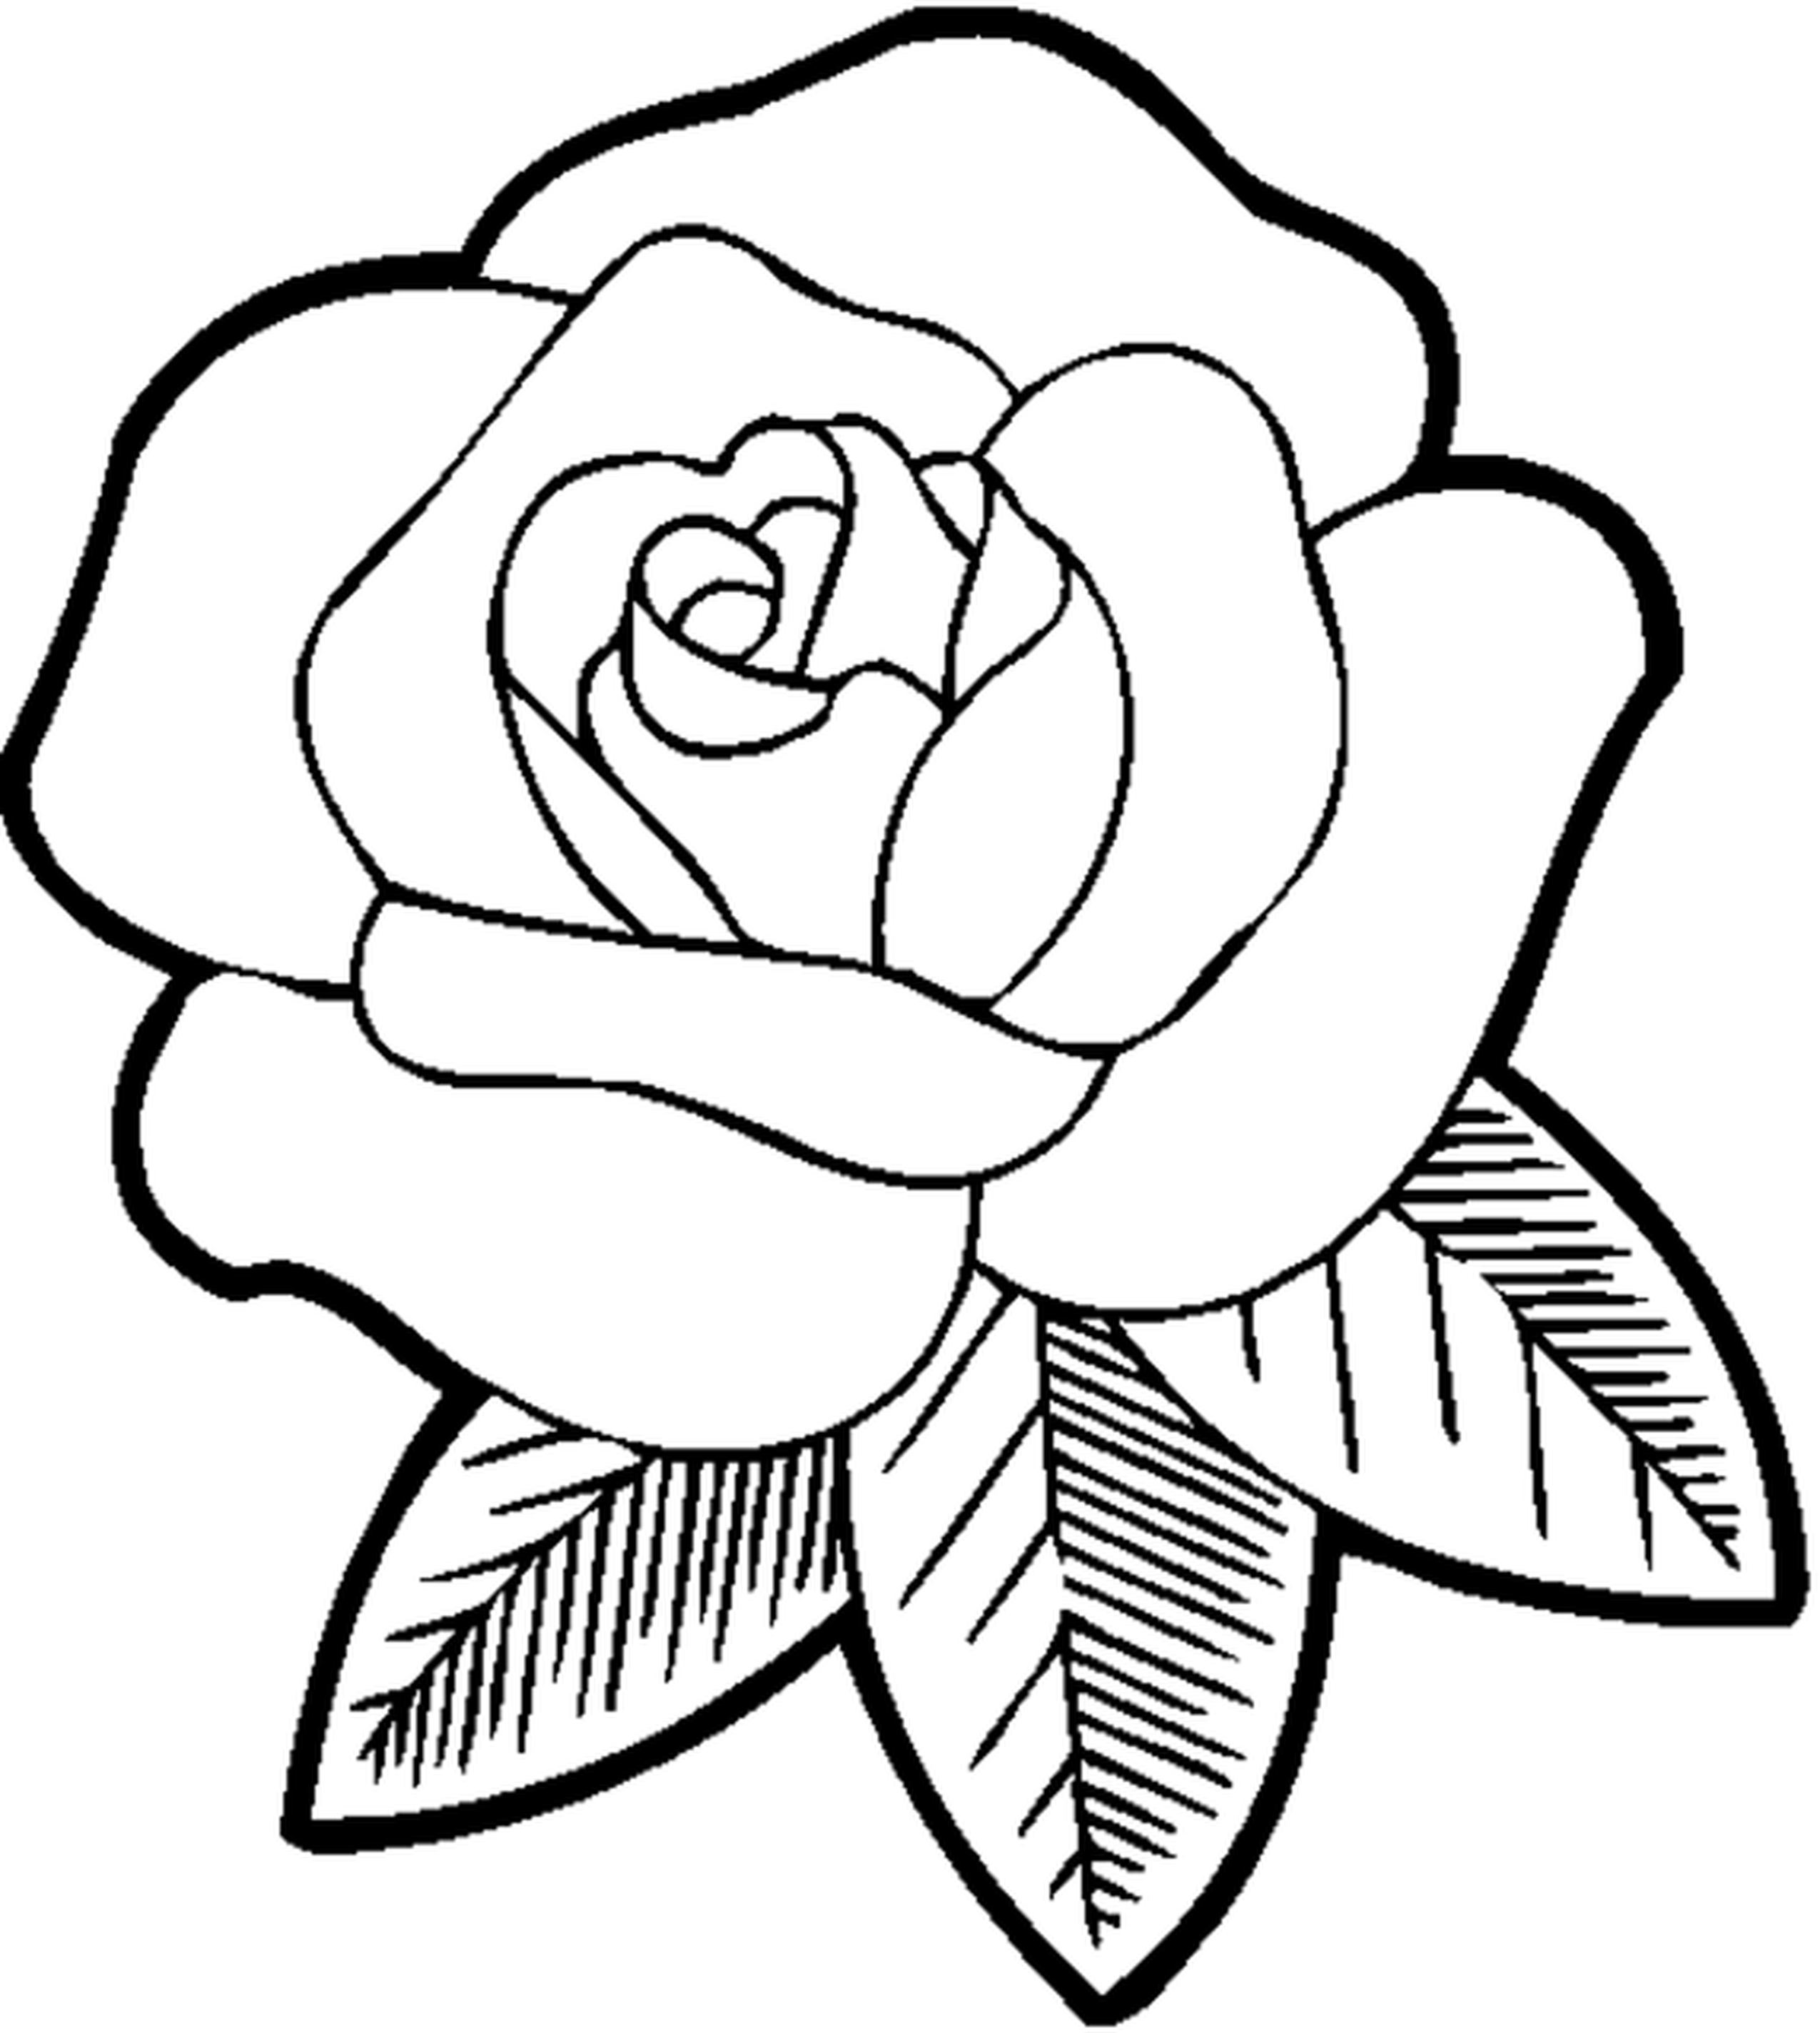 Printable picture of flowers graphic library library Printable Coloring Pages Flowers adult coloring pages flowers ... graphic library library